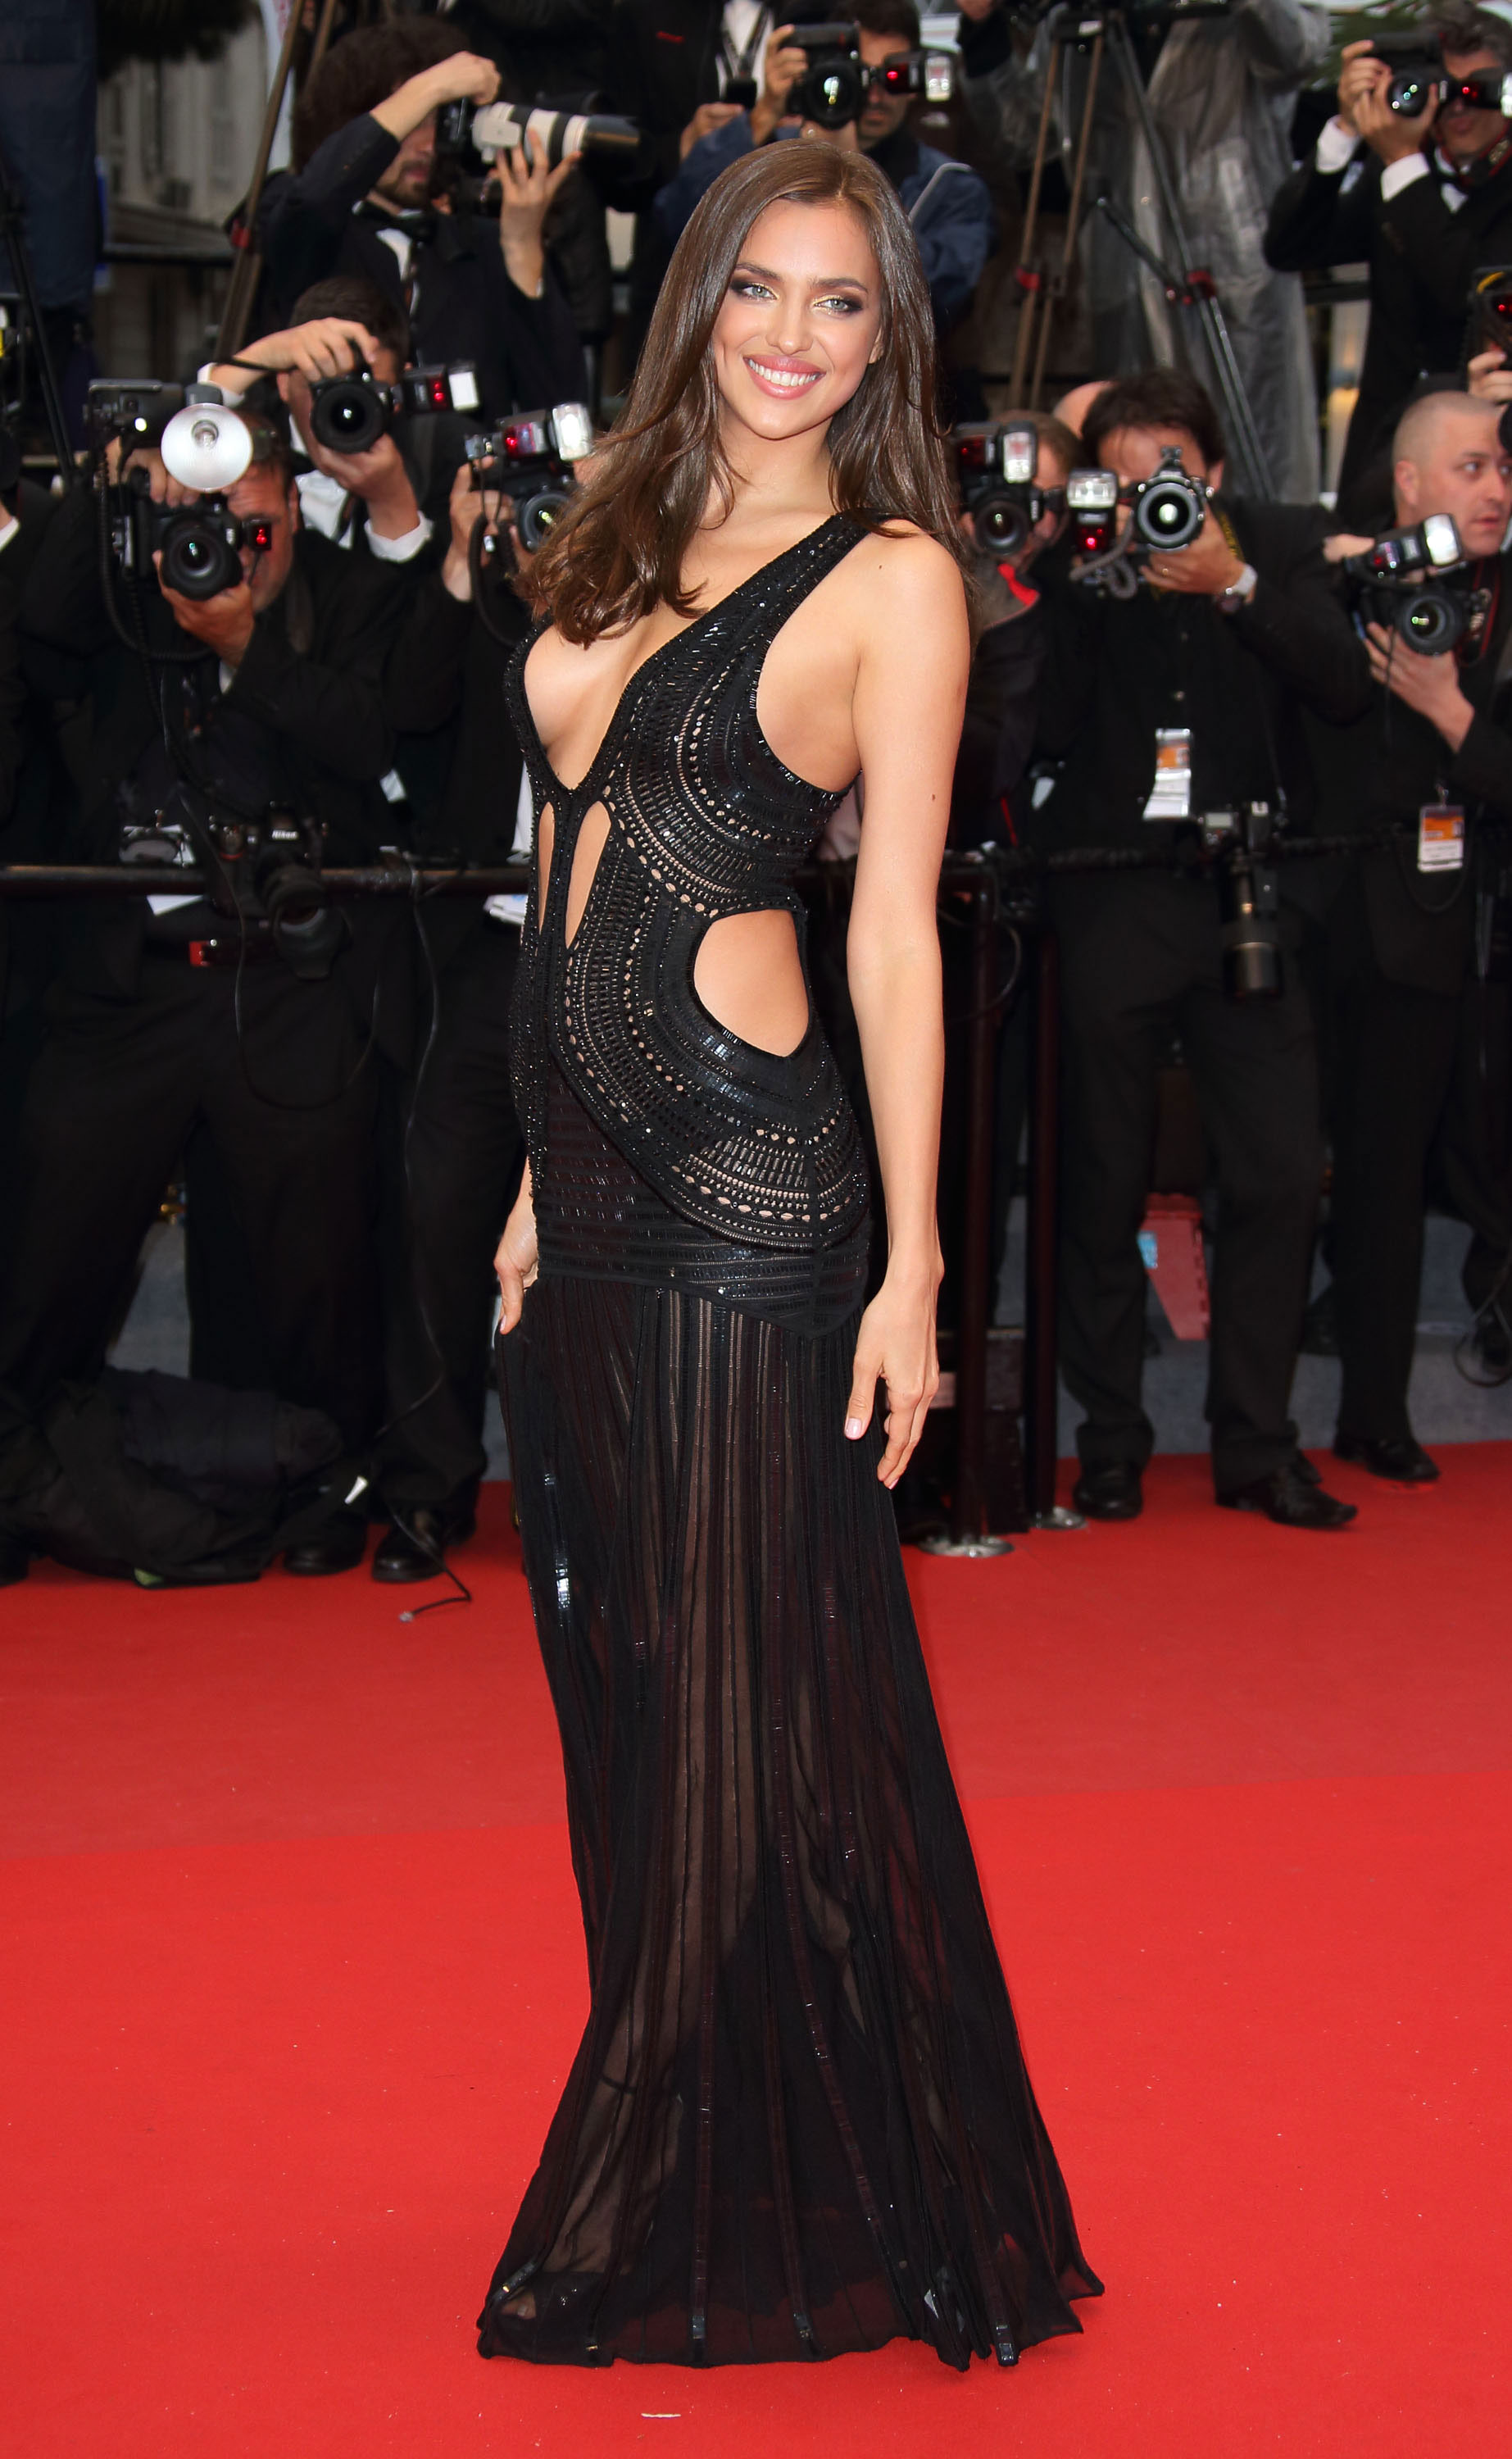 Irina Shayk attends the Premiere of 'All Is Lost' at The 66th Annual Cannes Film Festival.